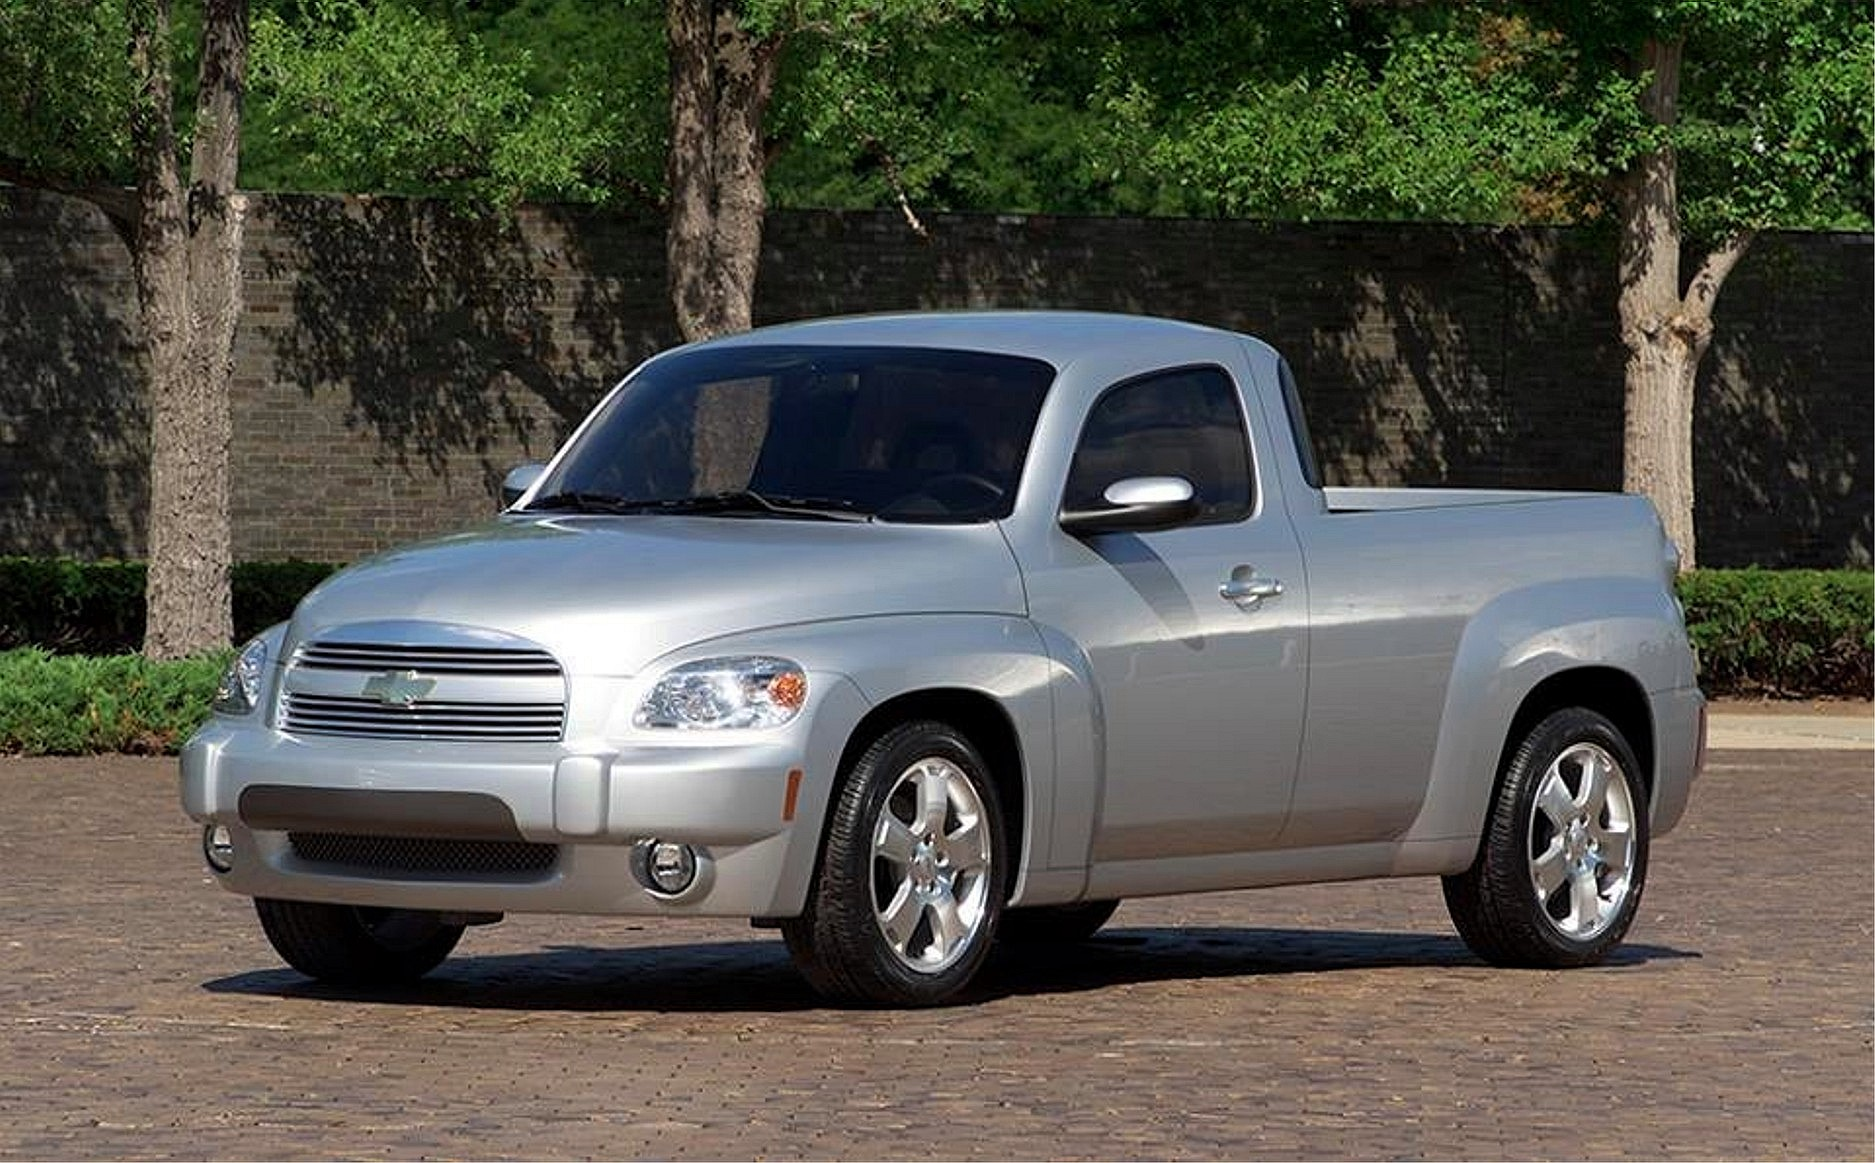 Chevy Hhr Pickup Truck